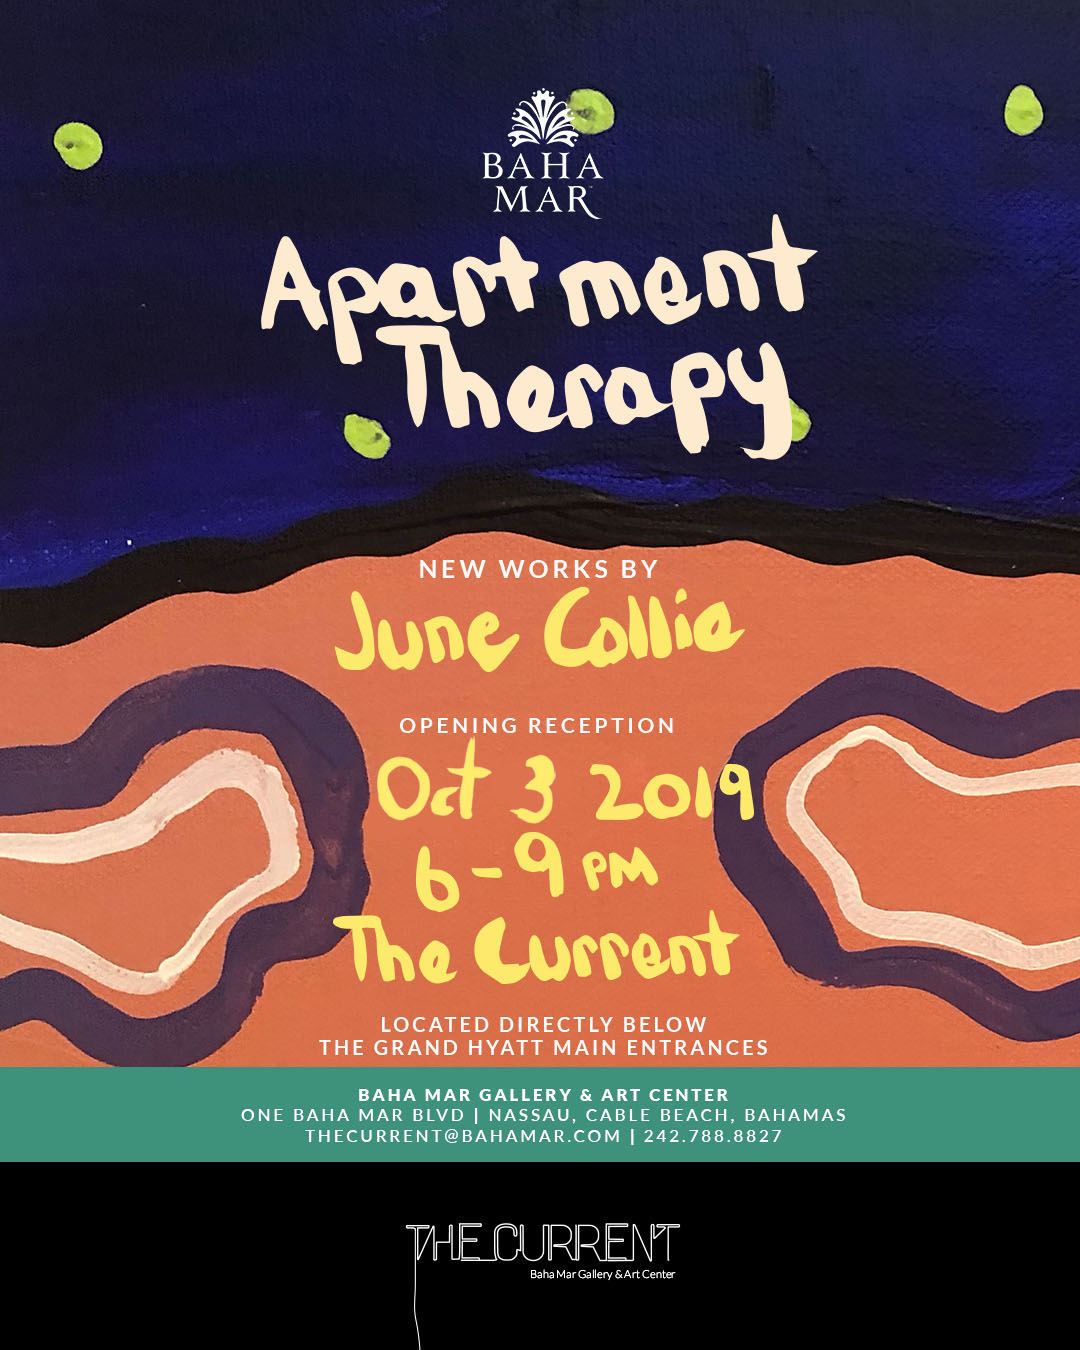 June-Collie-Apartment-therapy